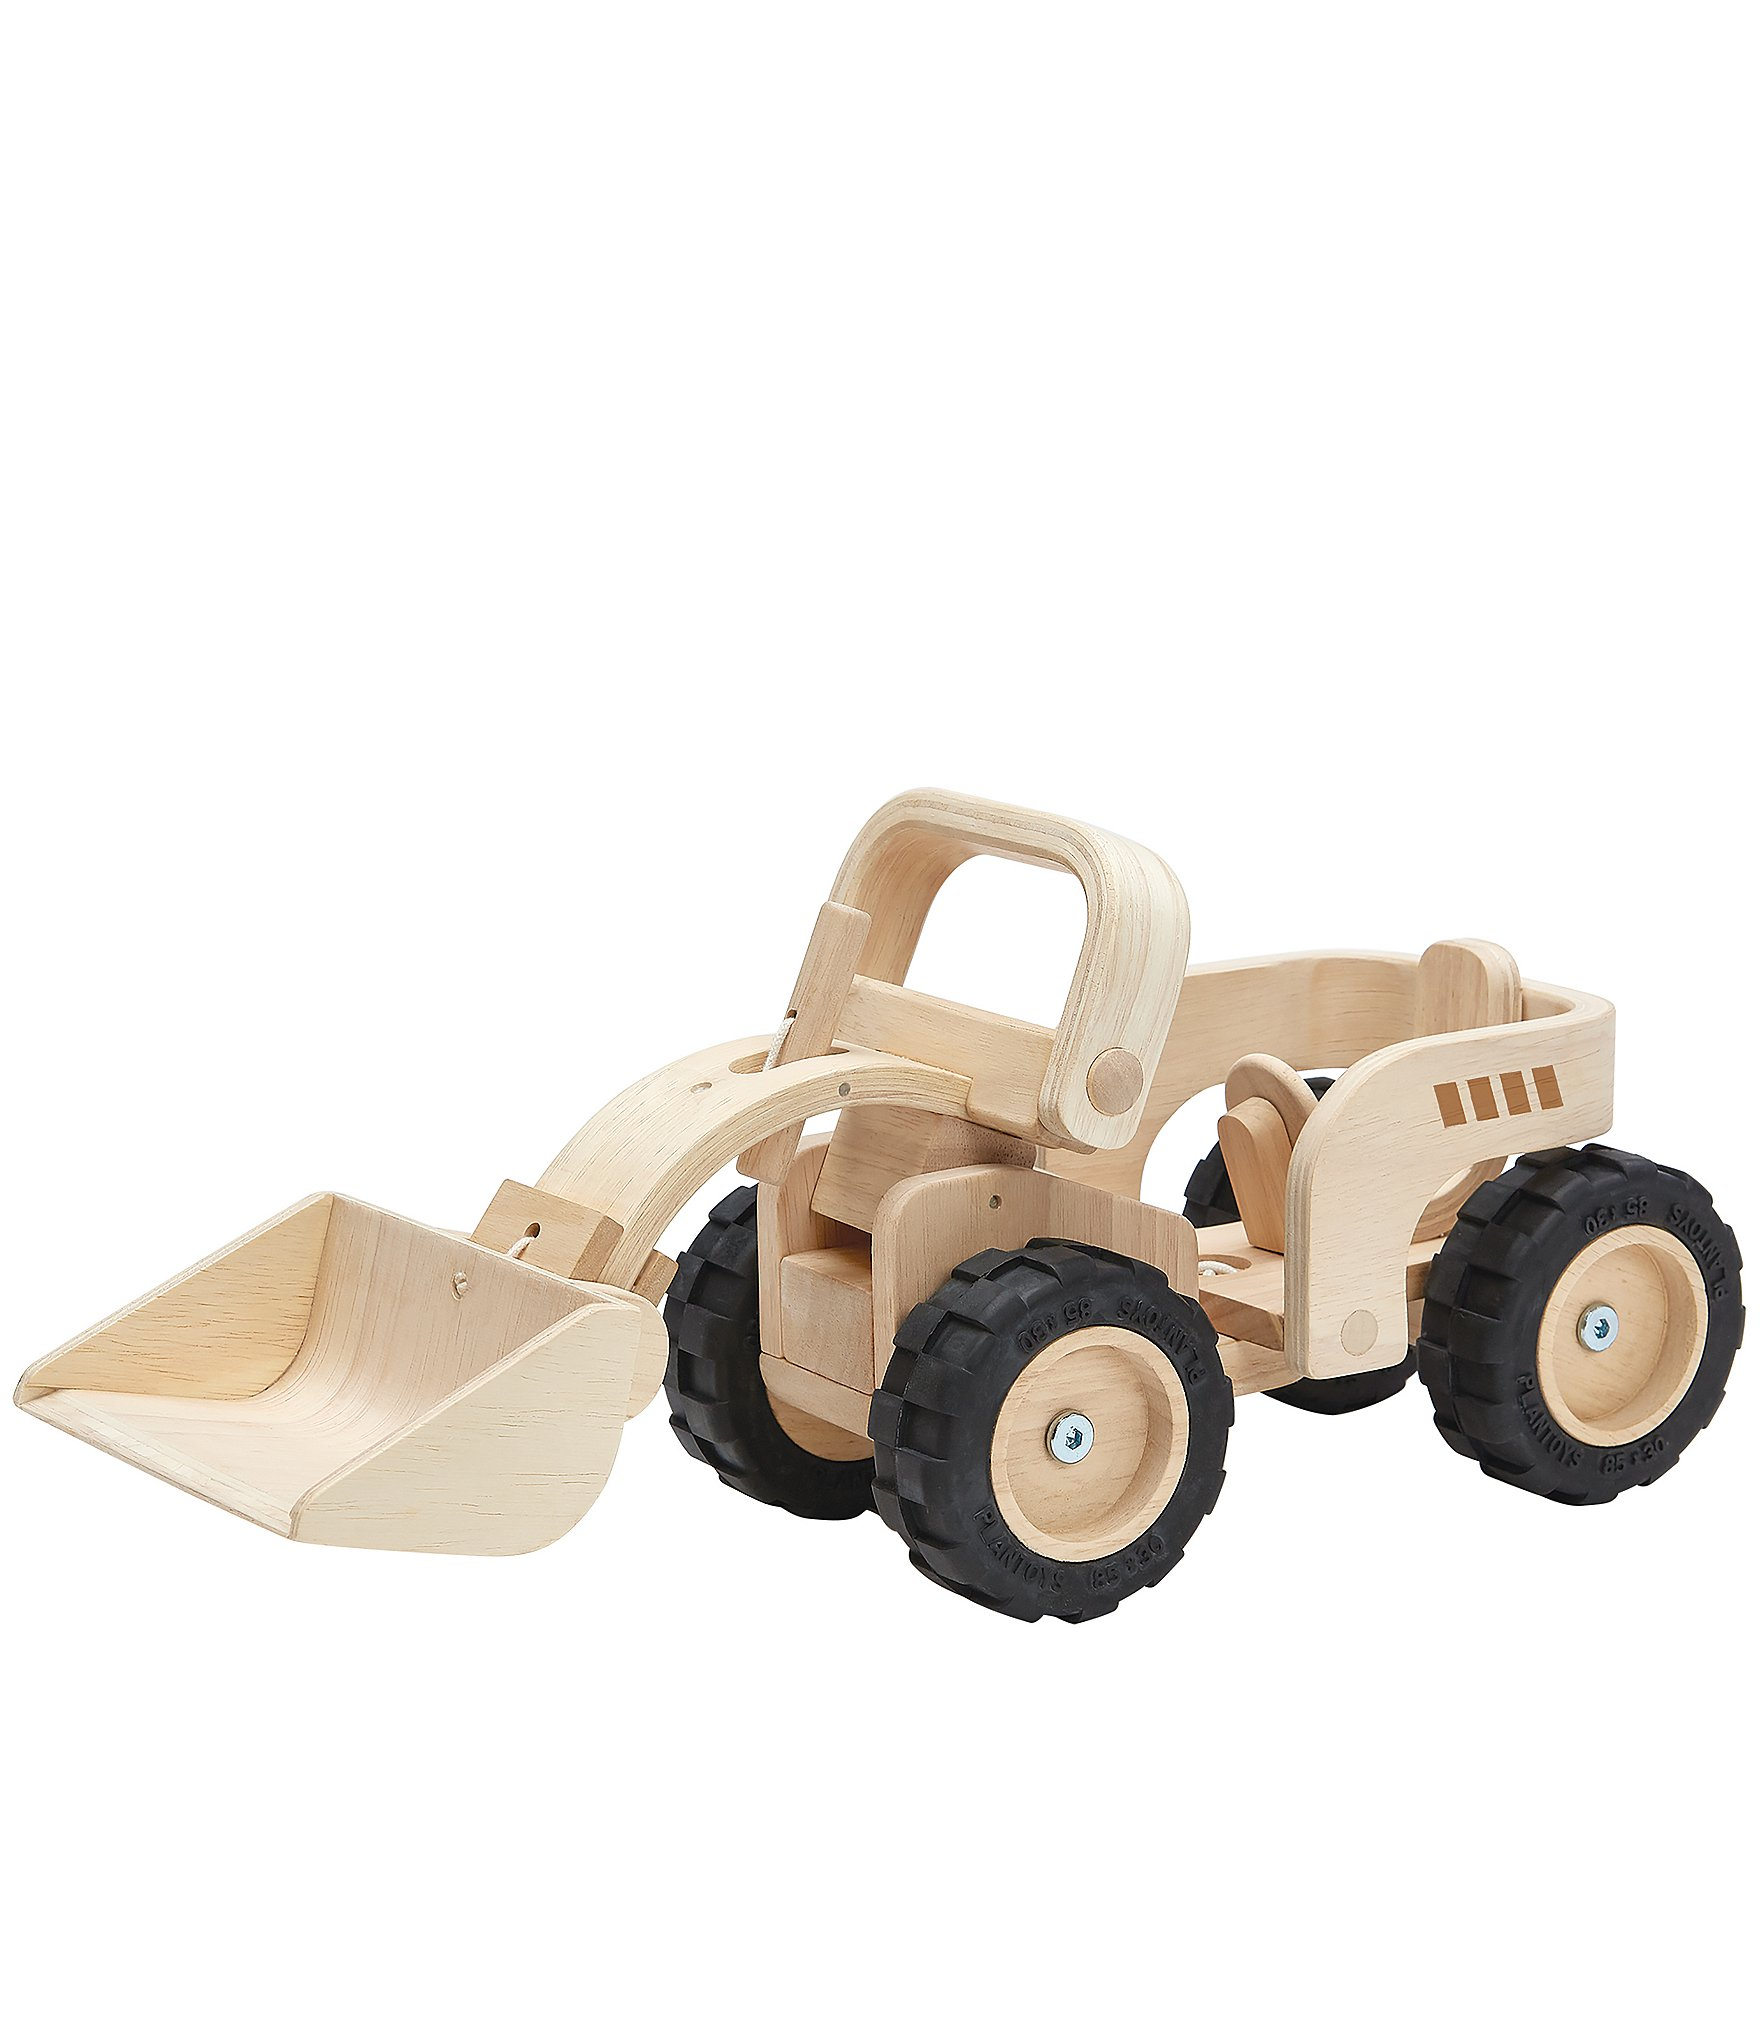 plan toys wooden toy bulldozer | dillard's